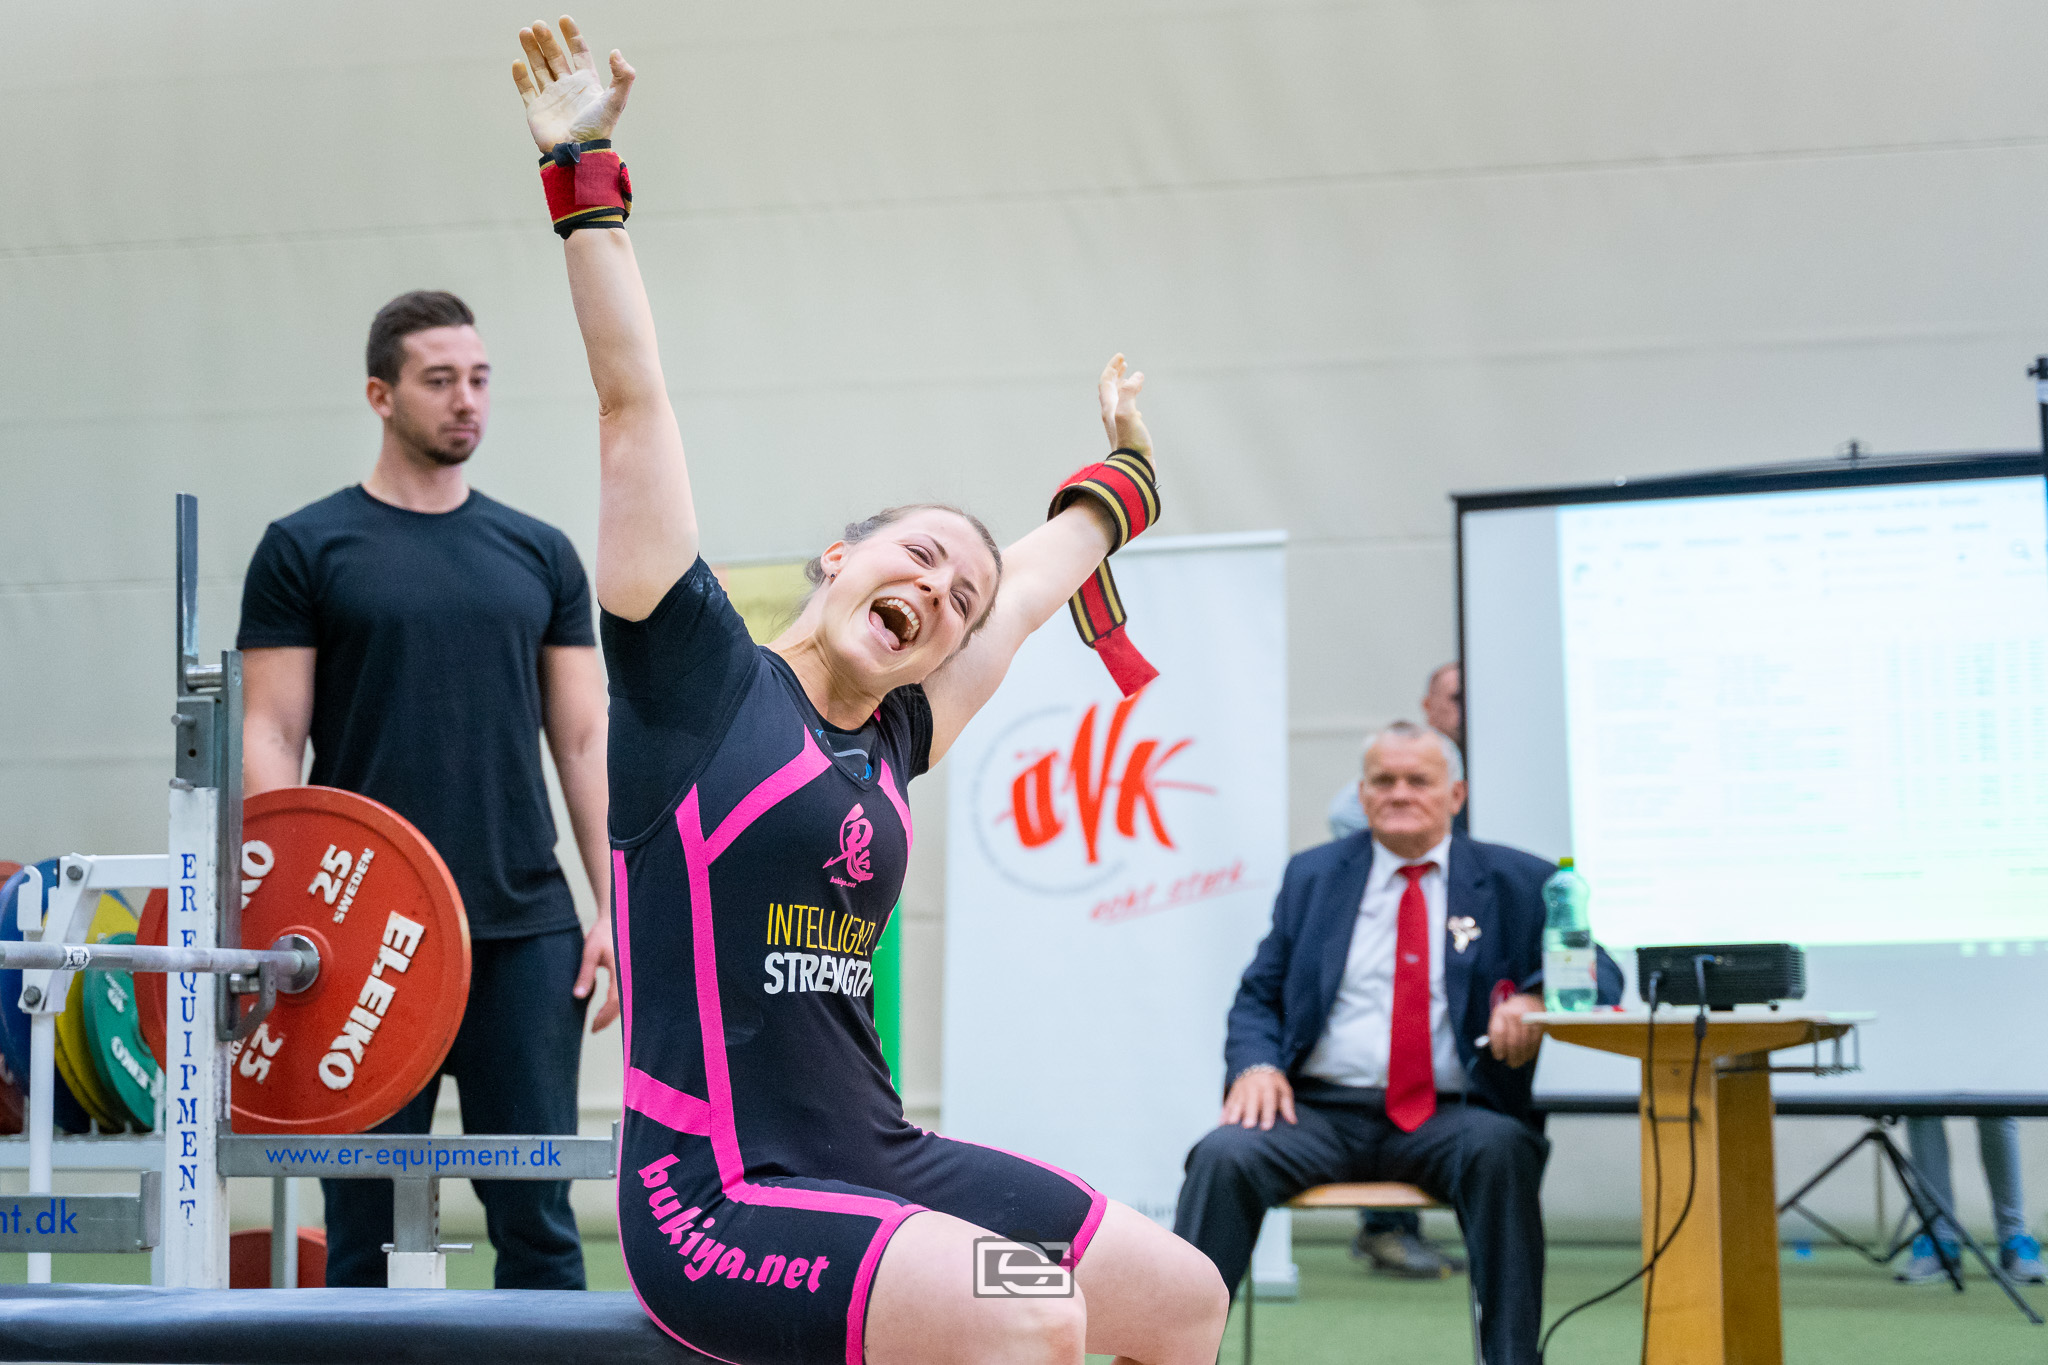 Exited about easy 200 pound Bench [90,5kg] breaking national record twice. -